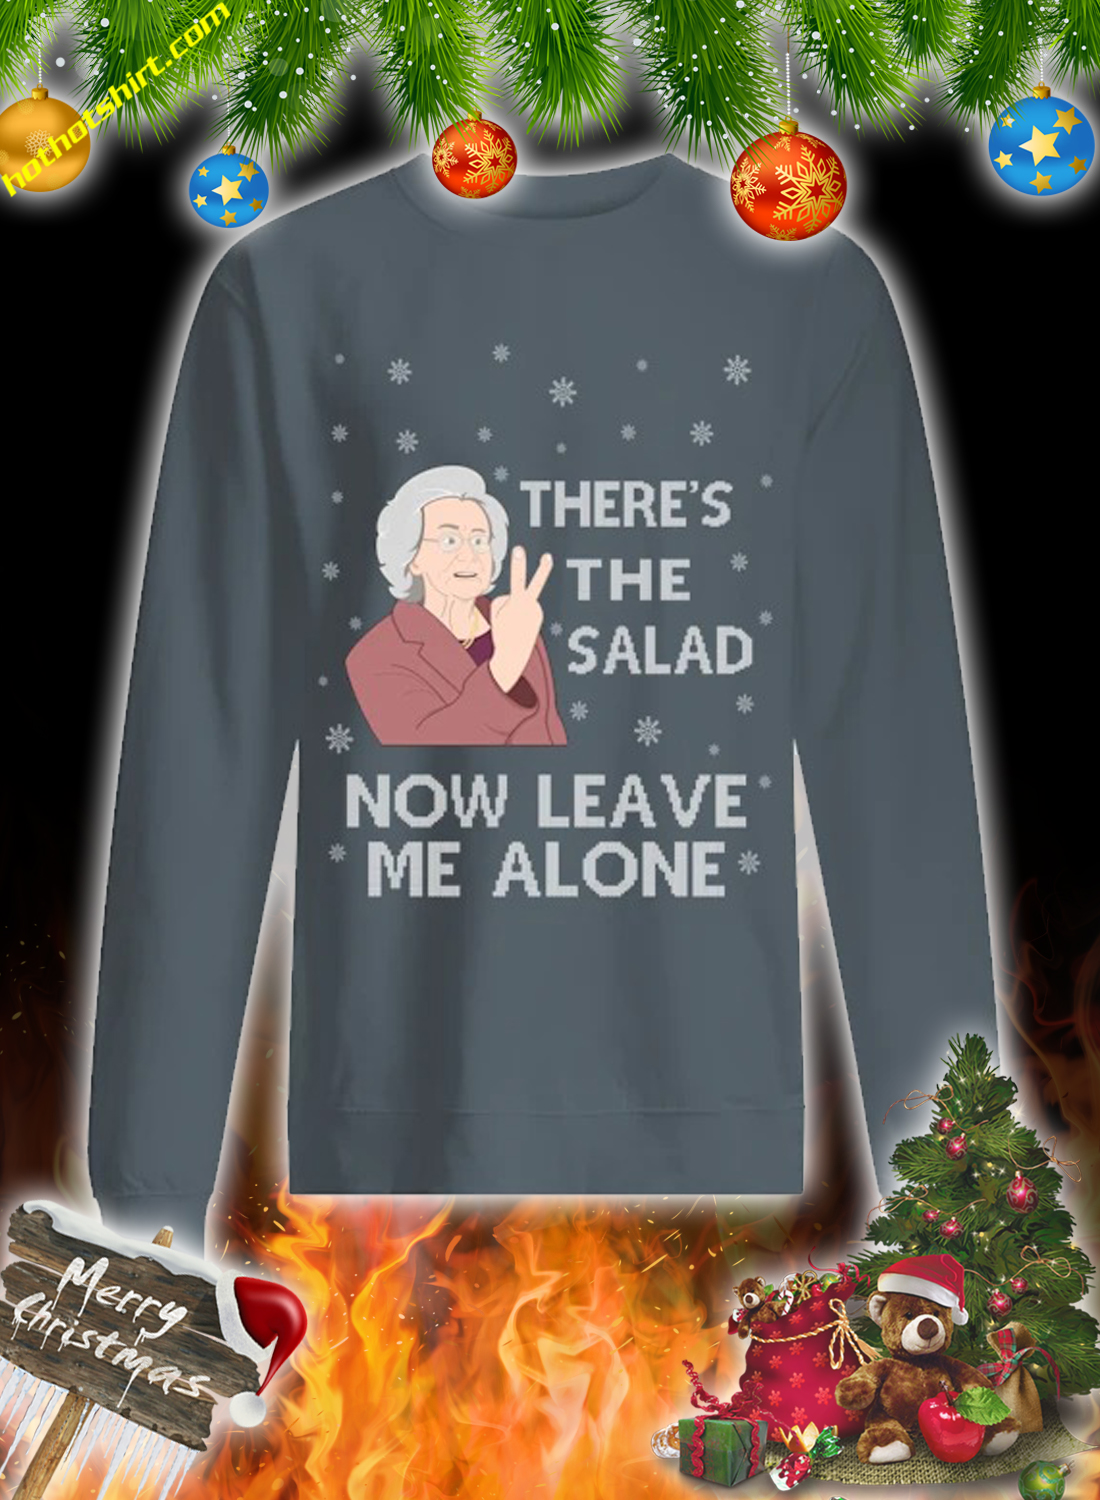 There's the salad now leave me alone christmas sweatshirt and jumper 3